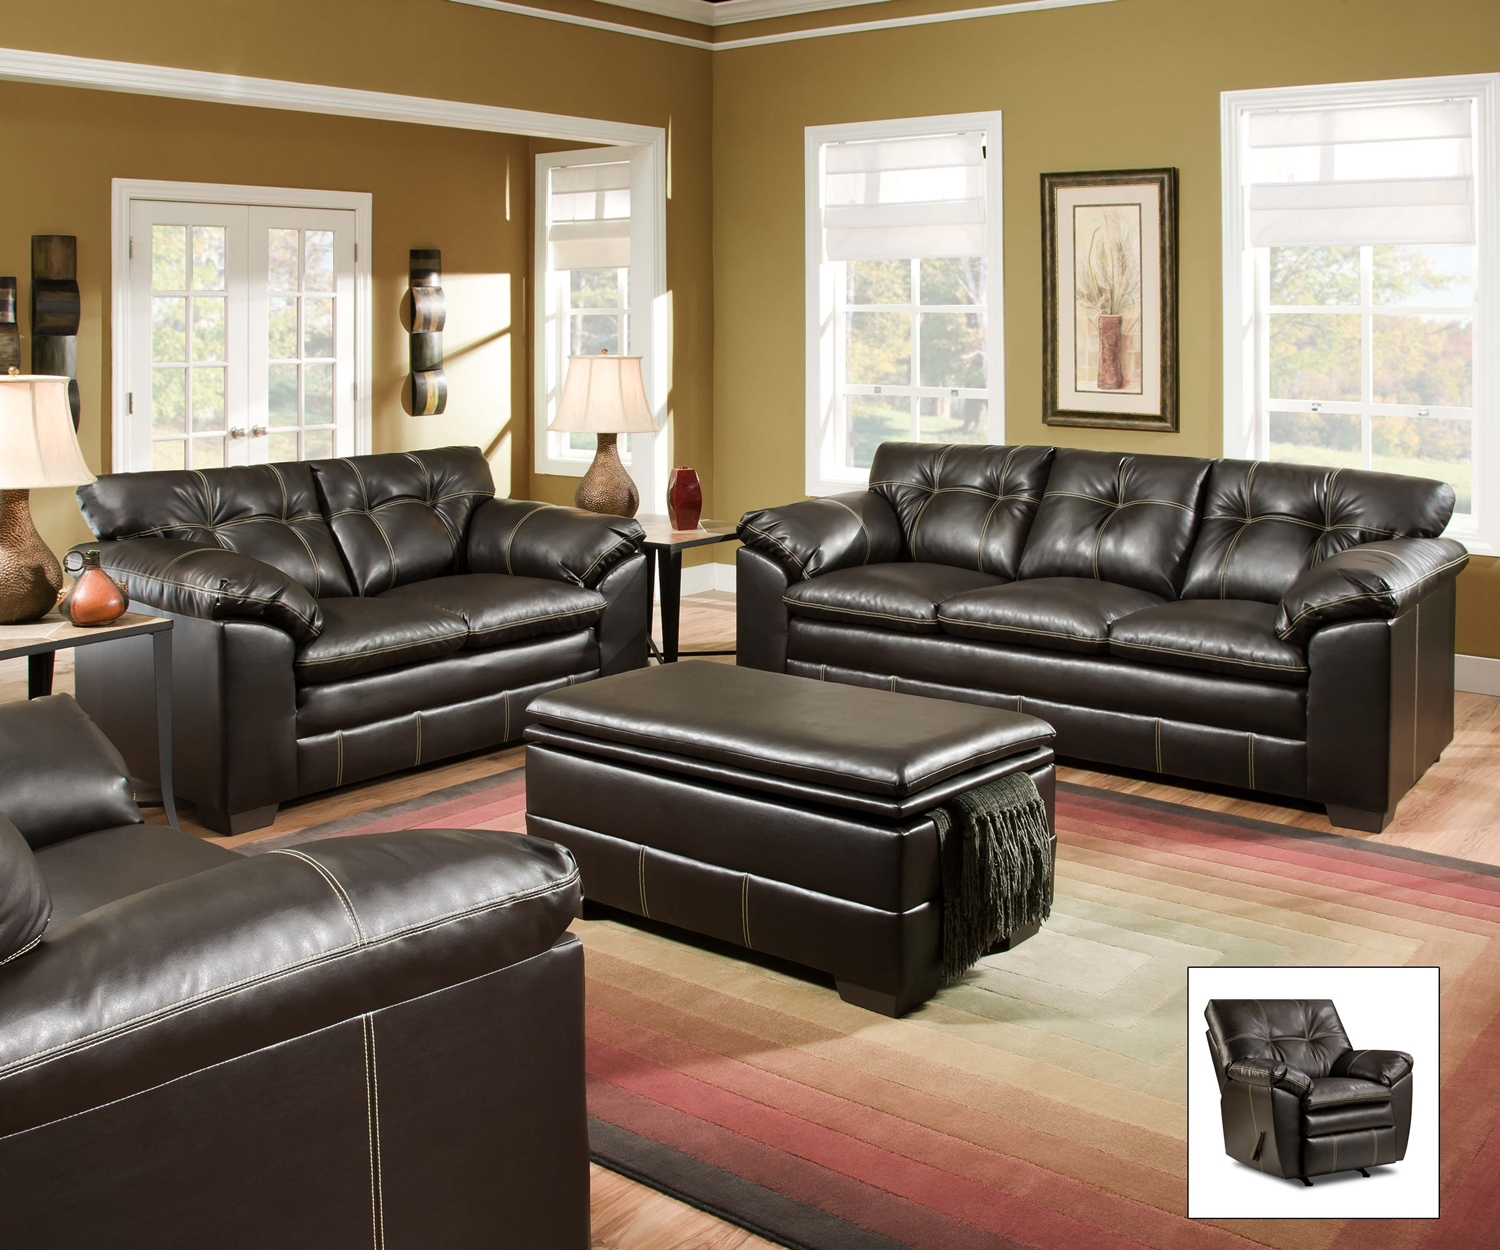 Brown Living Room Tables Sets: Premier Chocolate Brown Contemporary Tufted Living Room